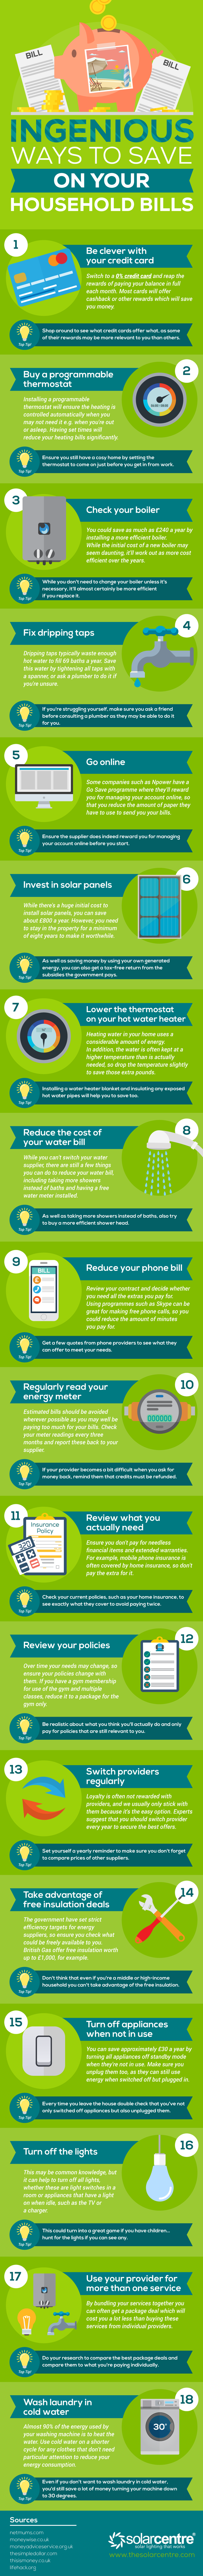 Longer-Working, More-Impactful Methods to Save on Household Bills - Infographic